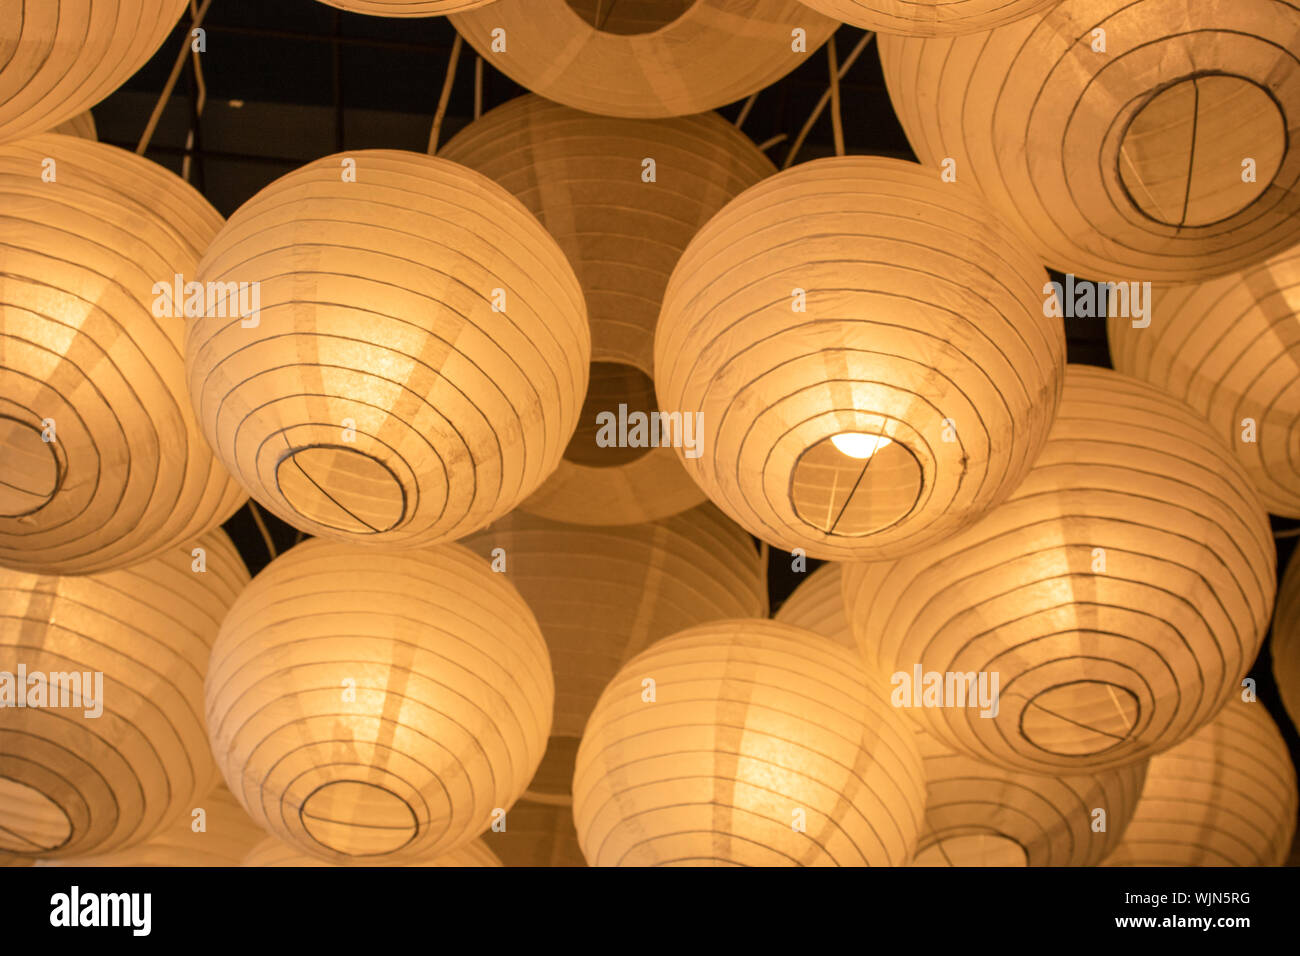 It Was Filmed Inside The Restaurant Paper Lamps In Yellow Color There S More Than One Stock Photo Alamy